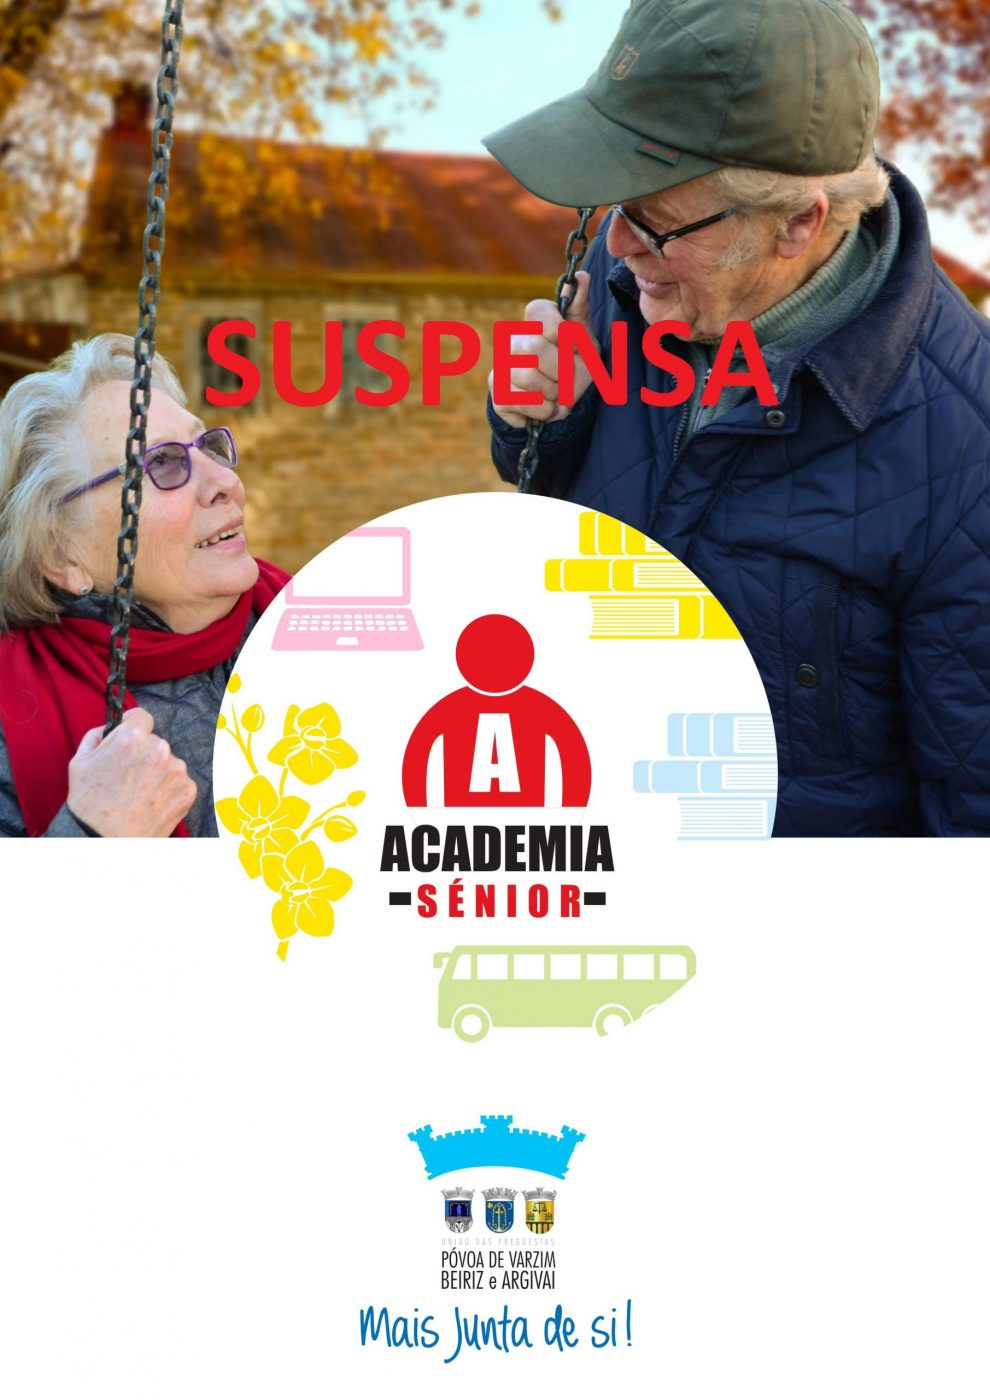 Academia Sénior sUSPENSA